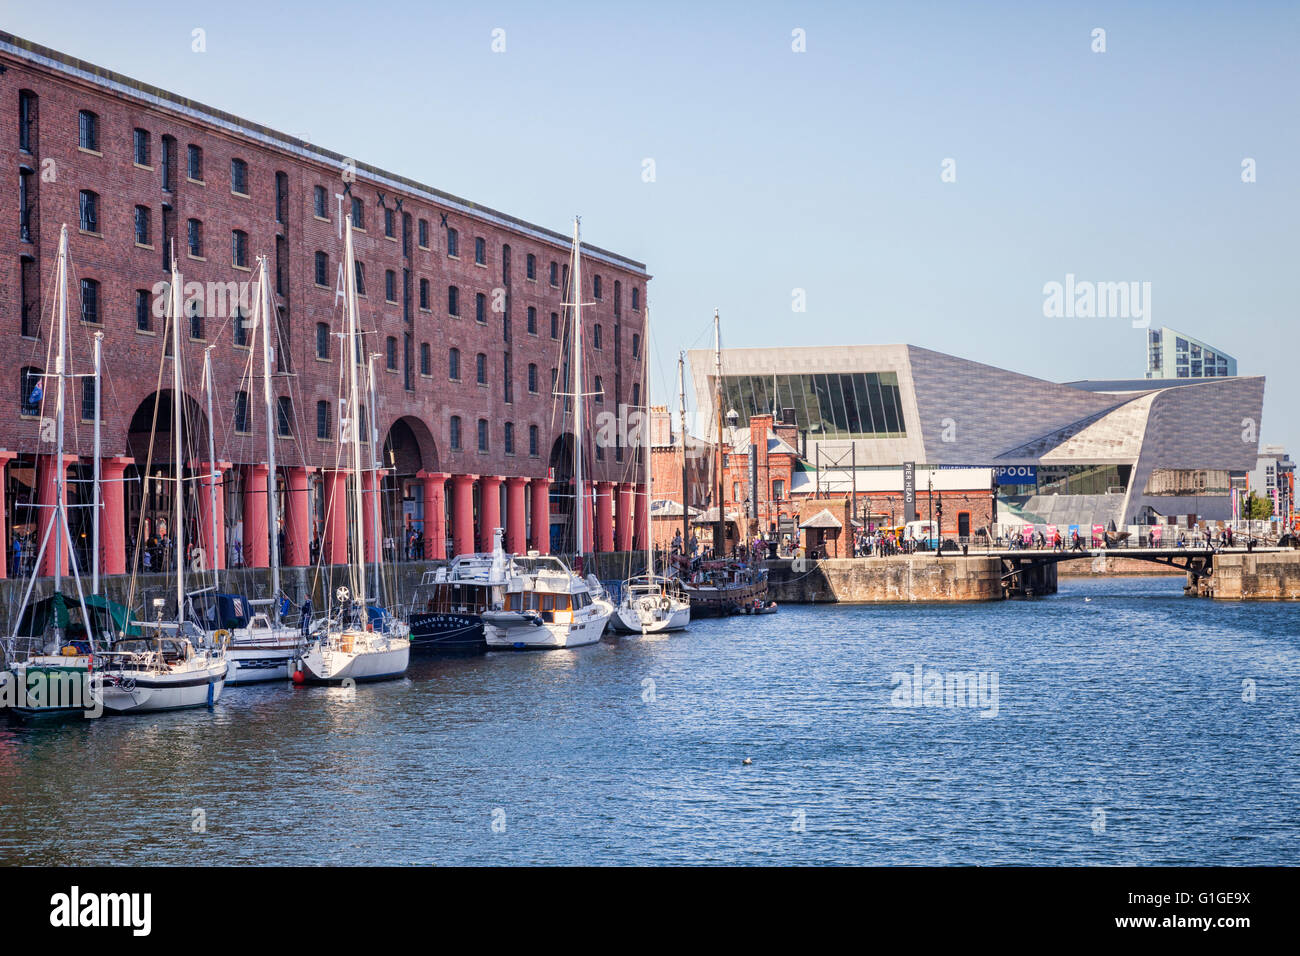 Museum of Liverpool from the Albert Dock, Liverpool, England, UK - Stock Image